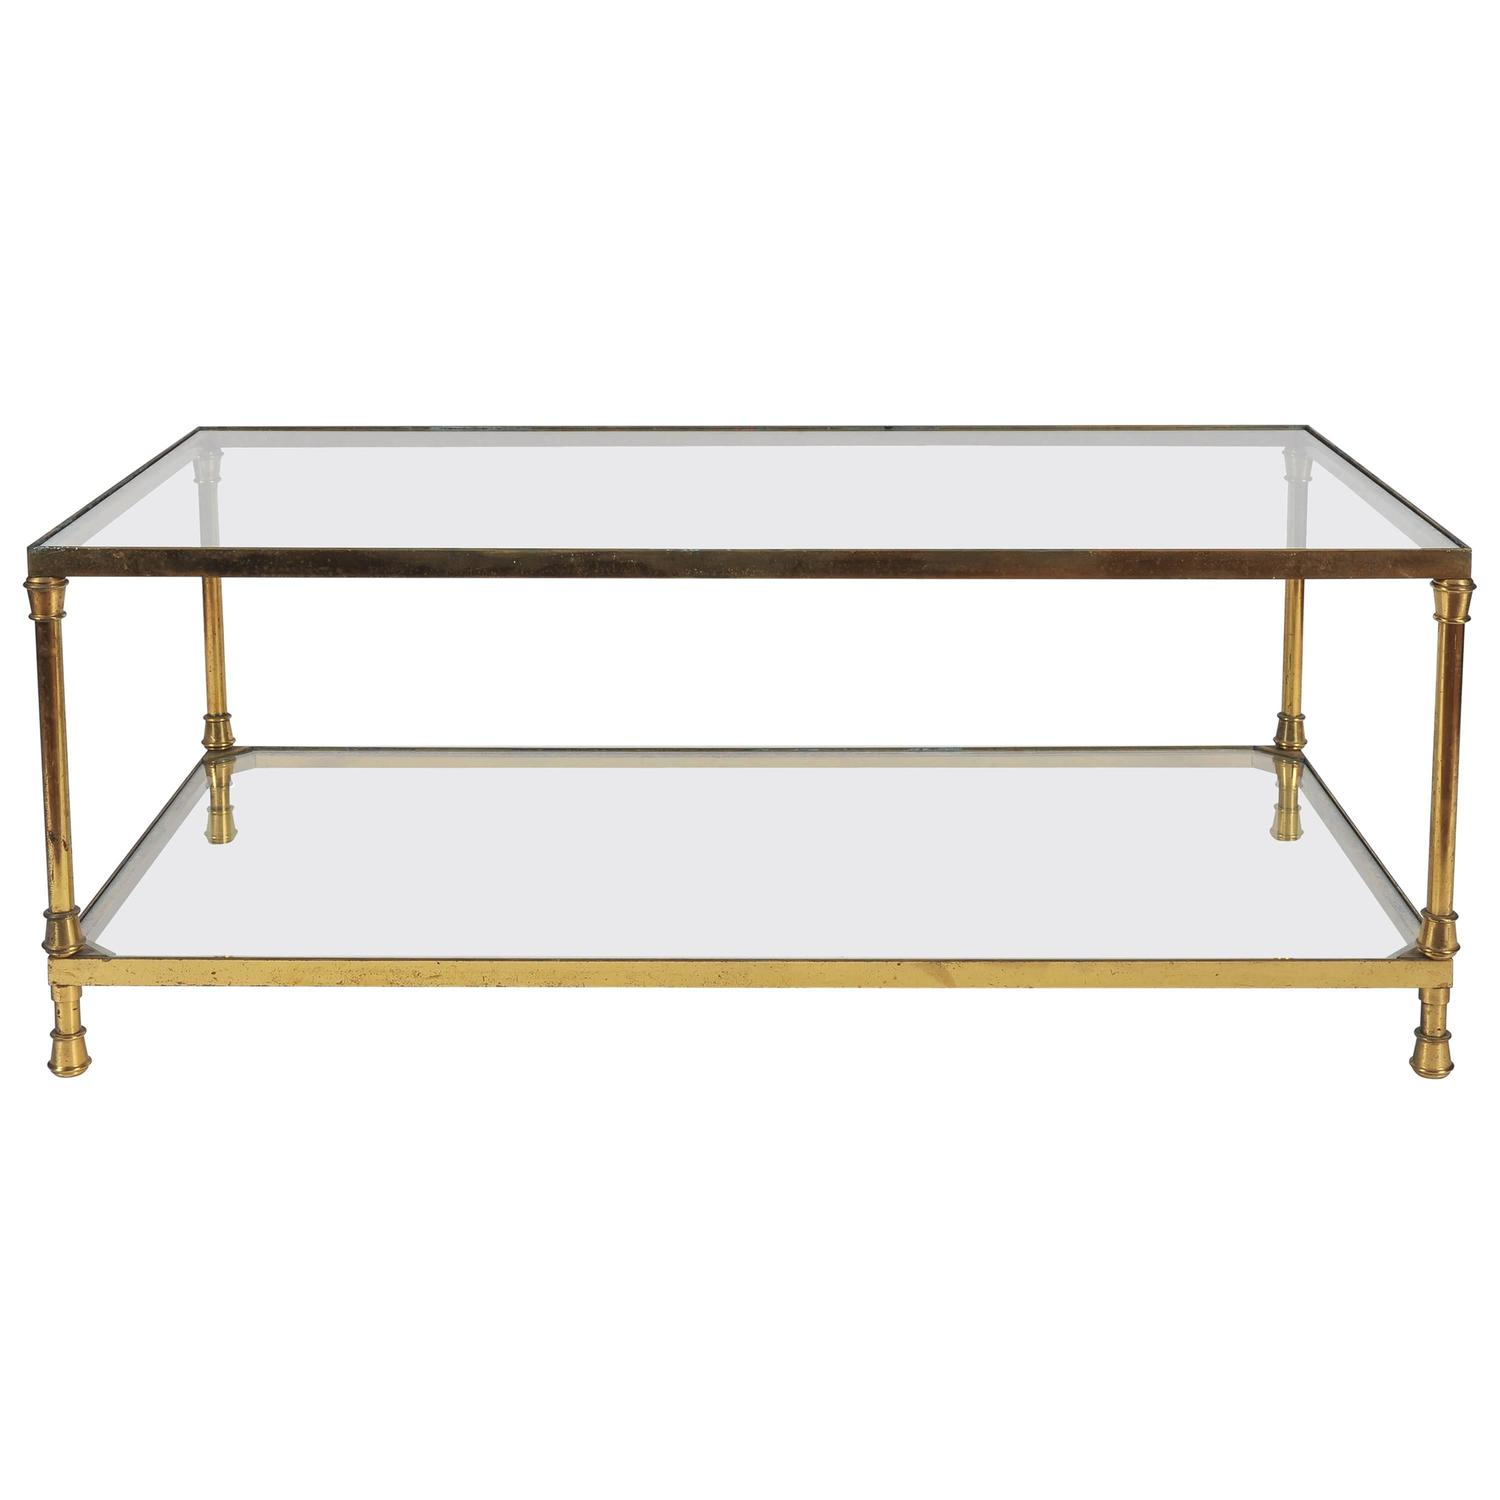 Italian Brass And Glass Coffee Table 1950s For Sale At 1stdibs